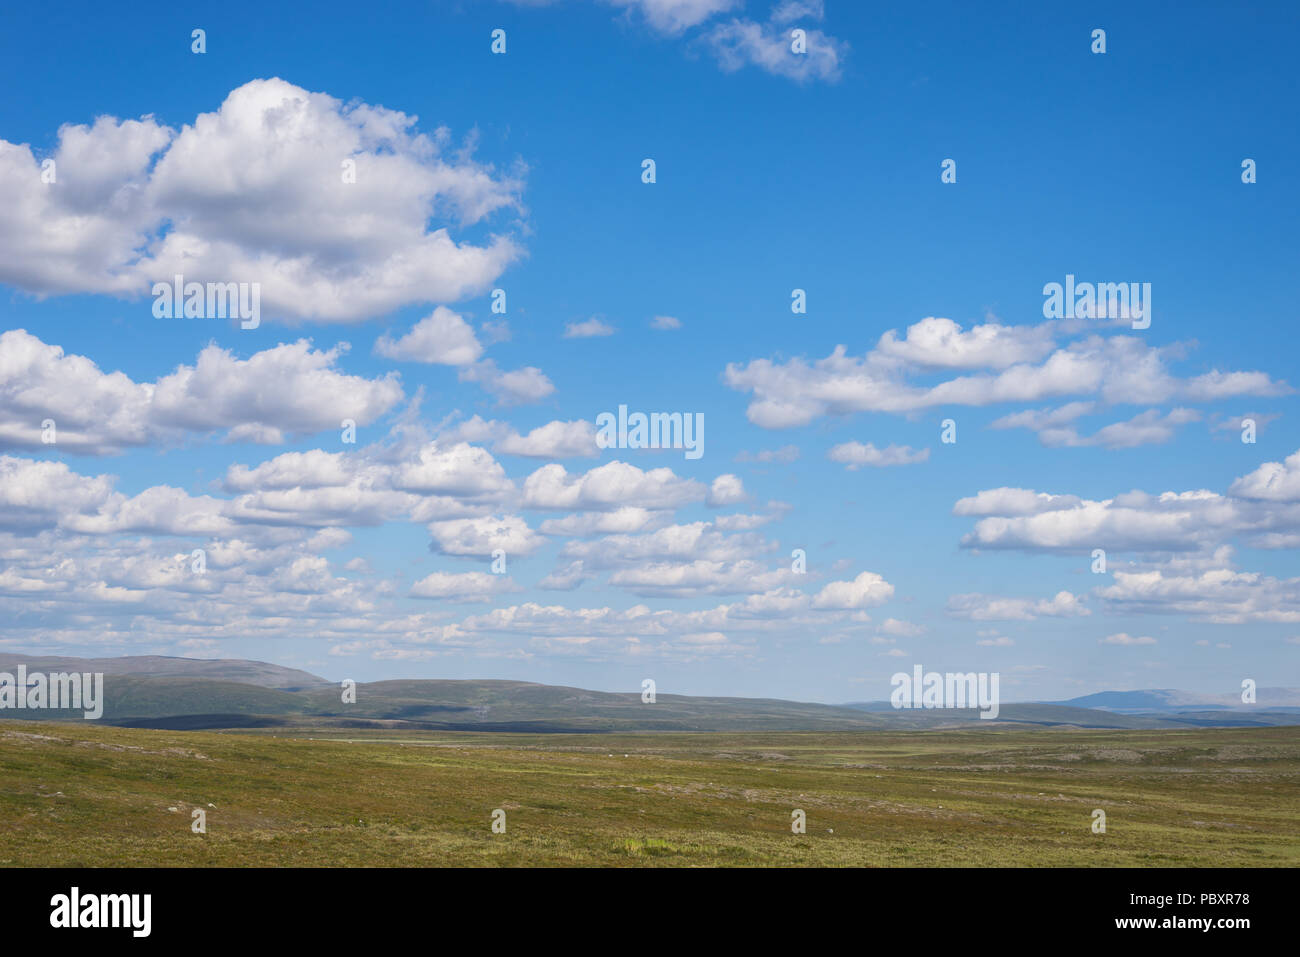 Arctic mountain in summer, Finnmarksvidda in Finnmark, Norway. Wild nature with blue sky and white clouds. - Stock Image